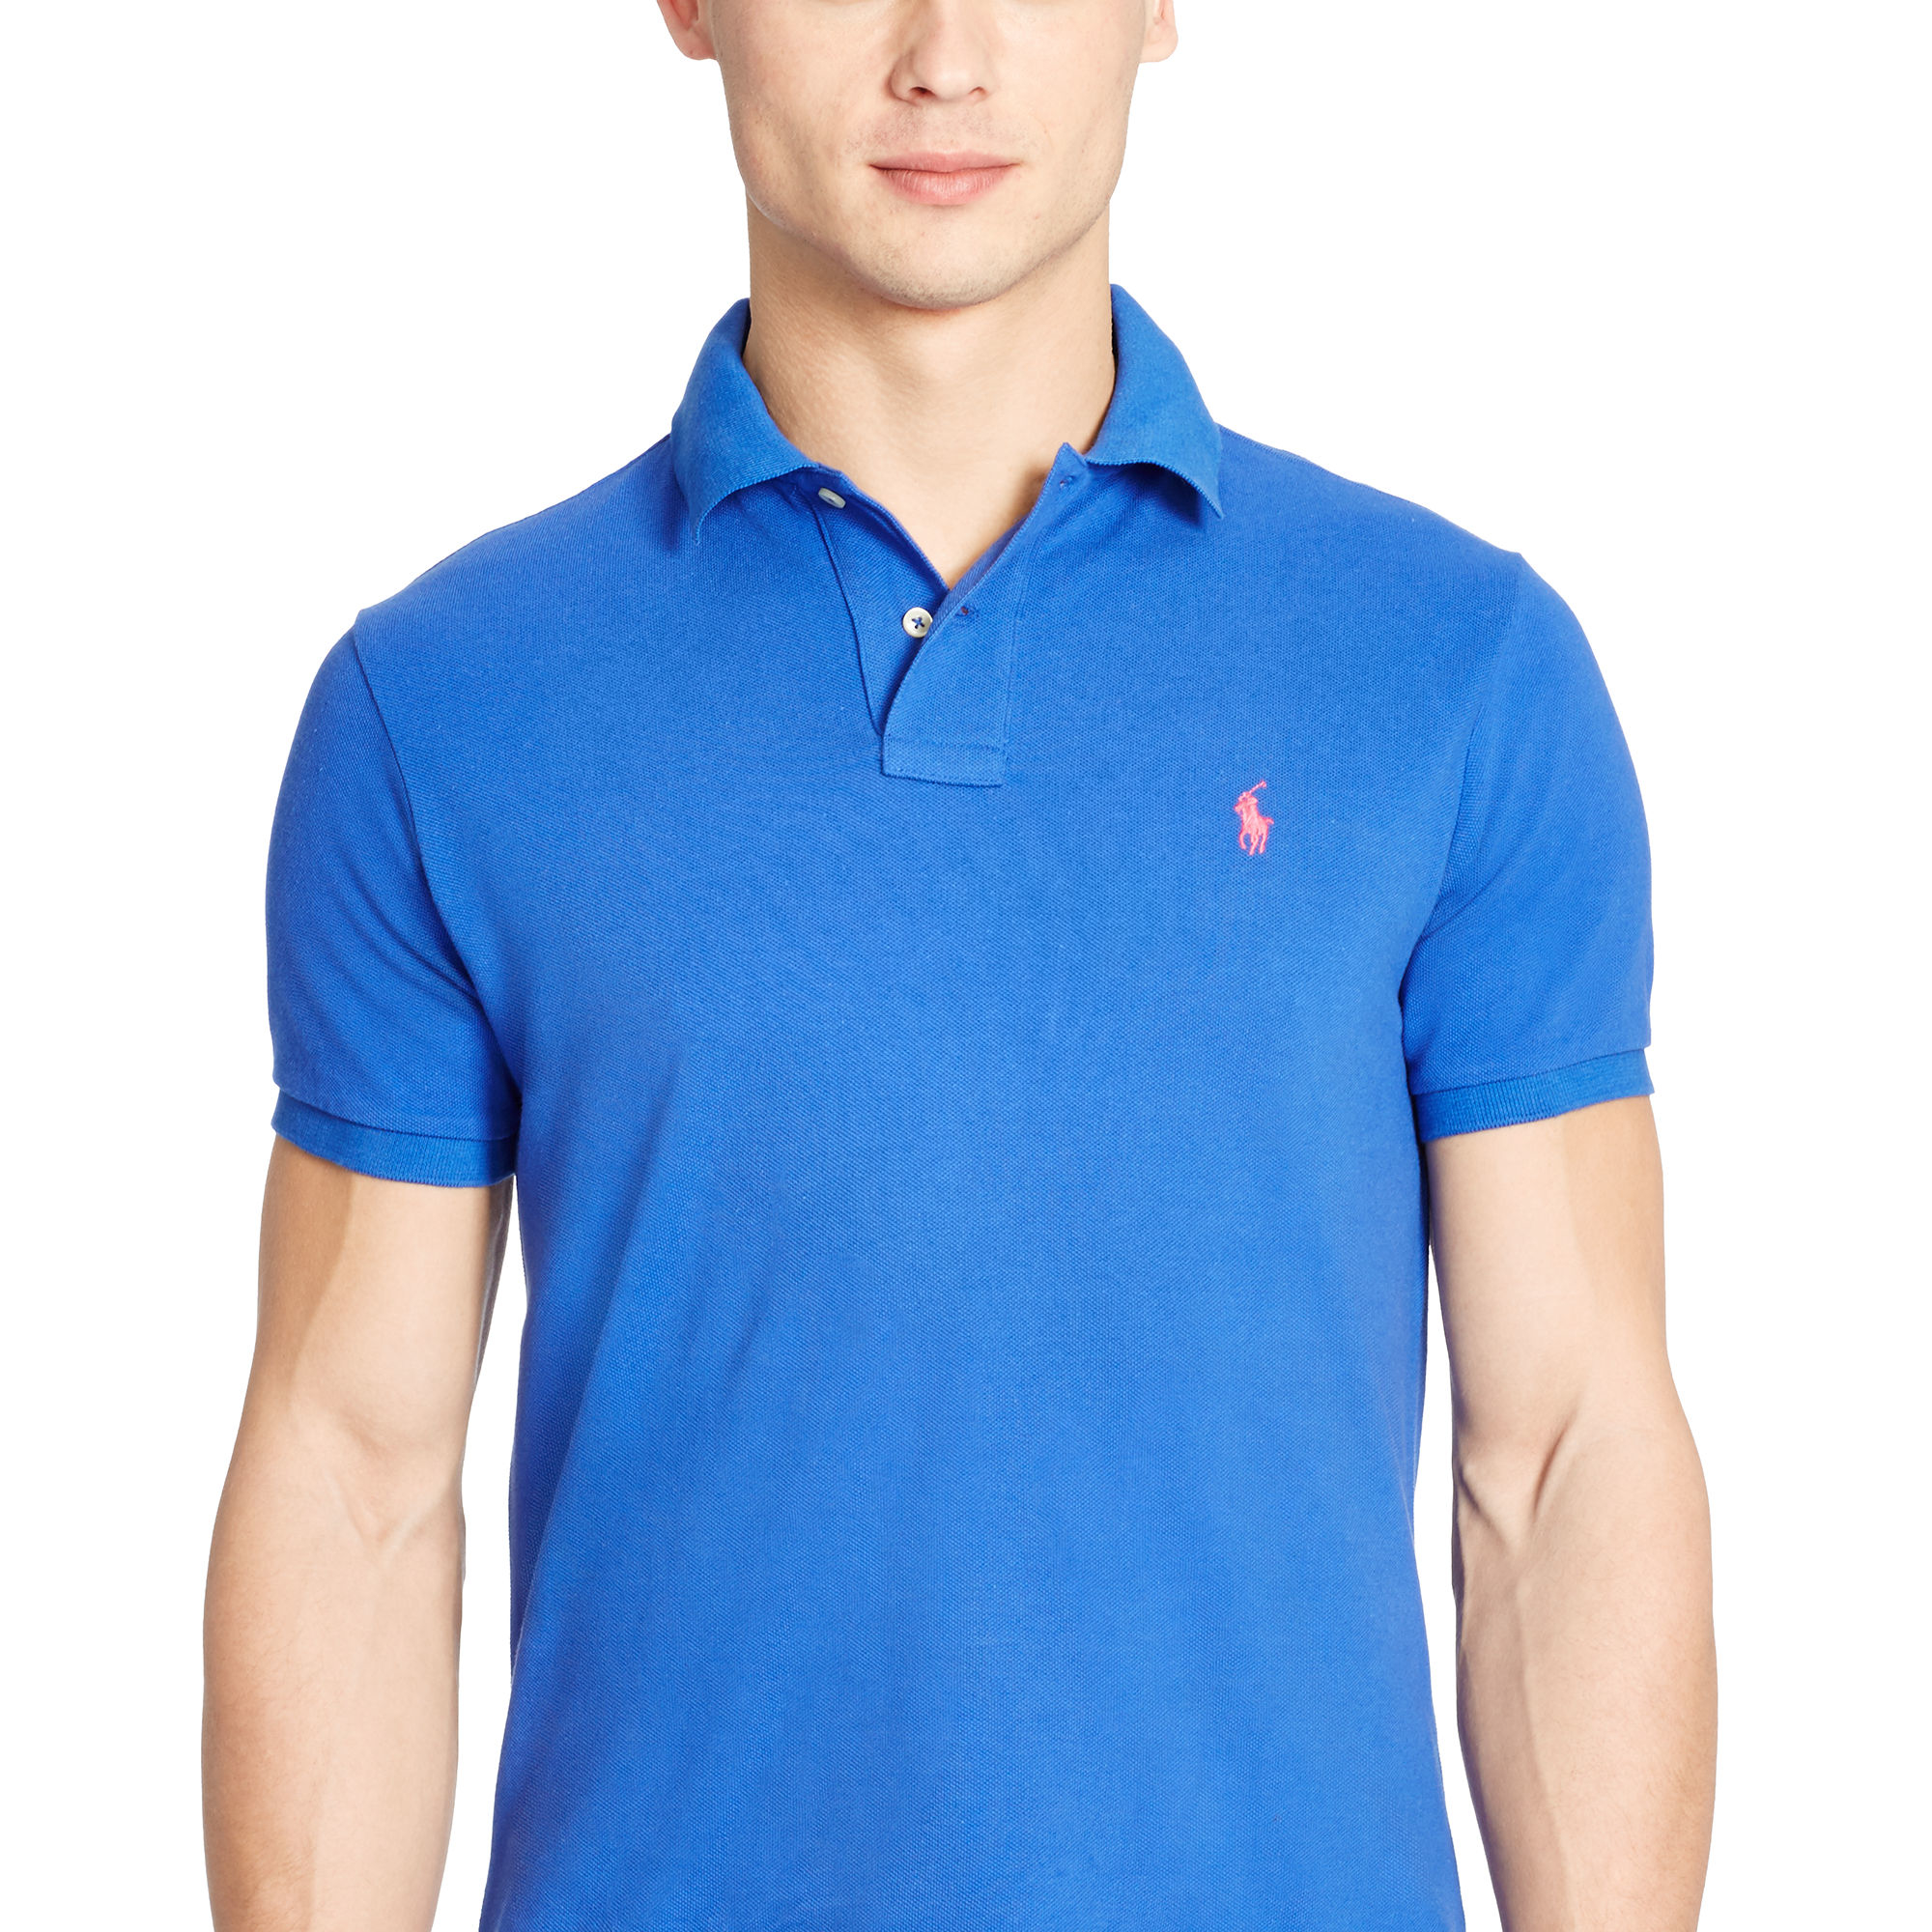 Lyst polo ralph lauren custom fit mesh polo shirt in for Custom polo shirts canada